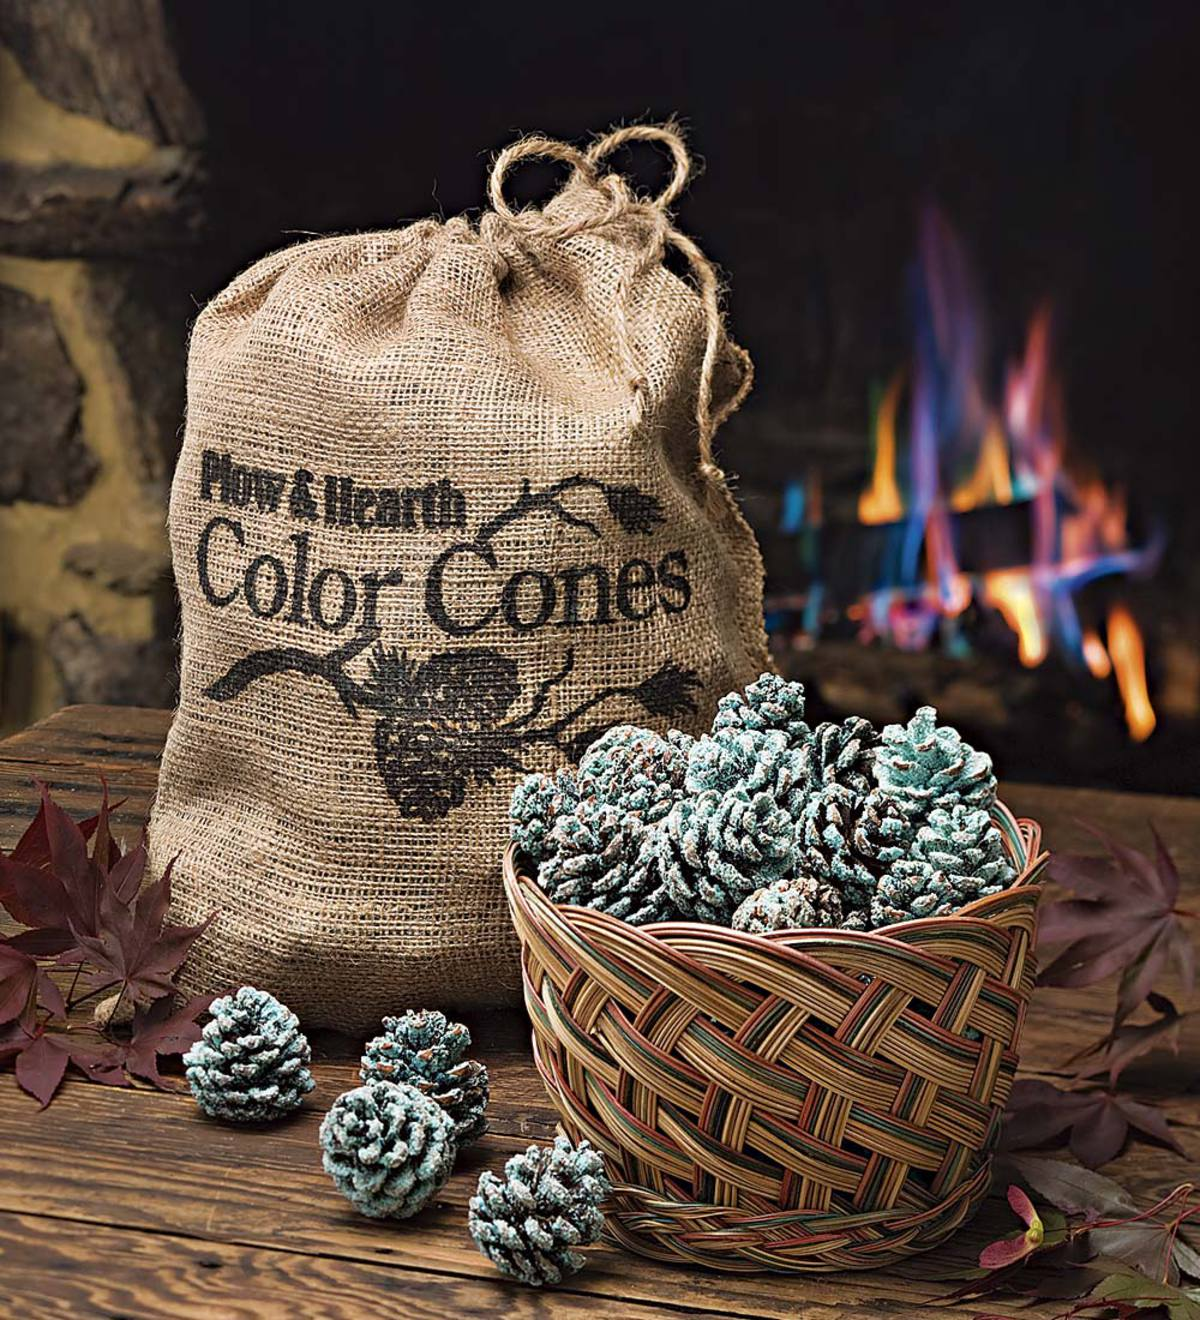 Color Cones that Create Blue and Green Flames in the Fireplace